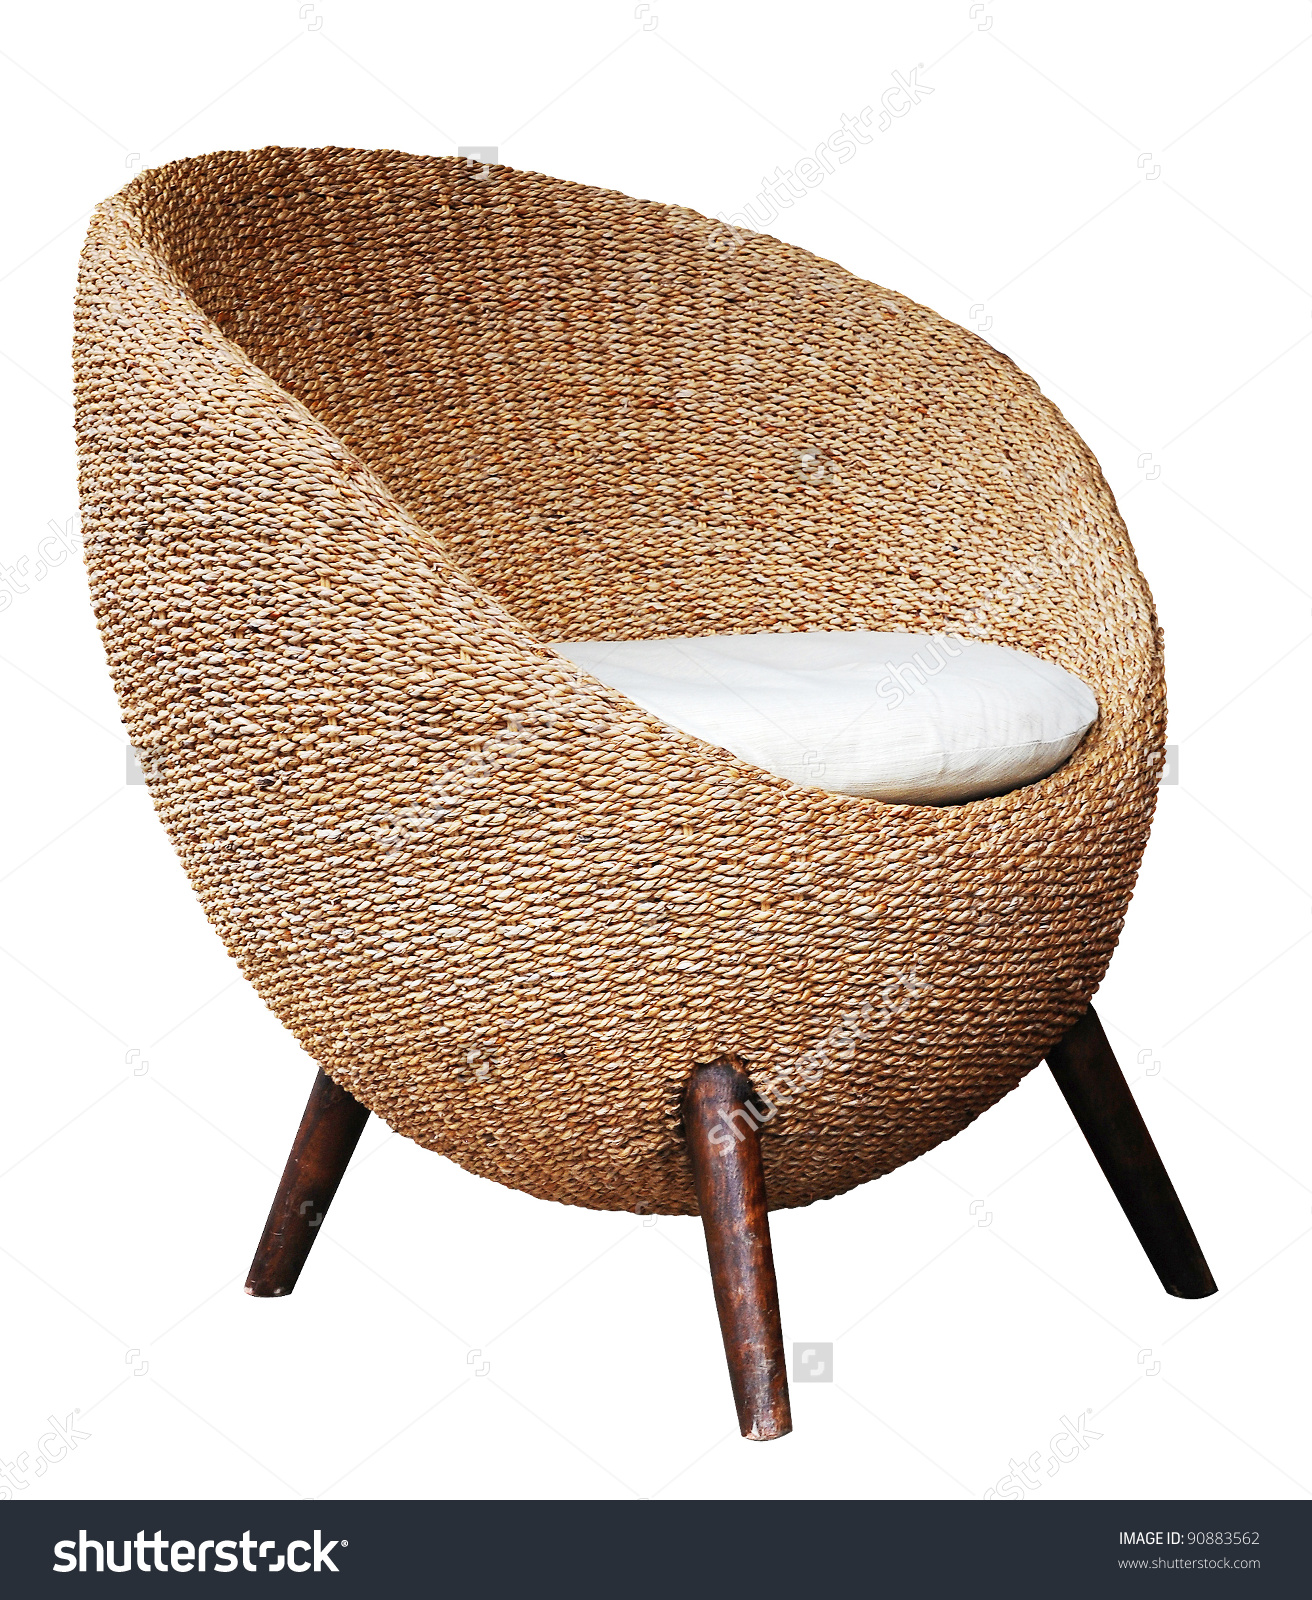 Round Wicker Chairs On White Background Stock Photo 90883562.